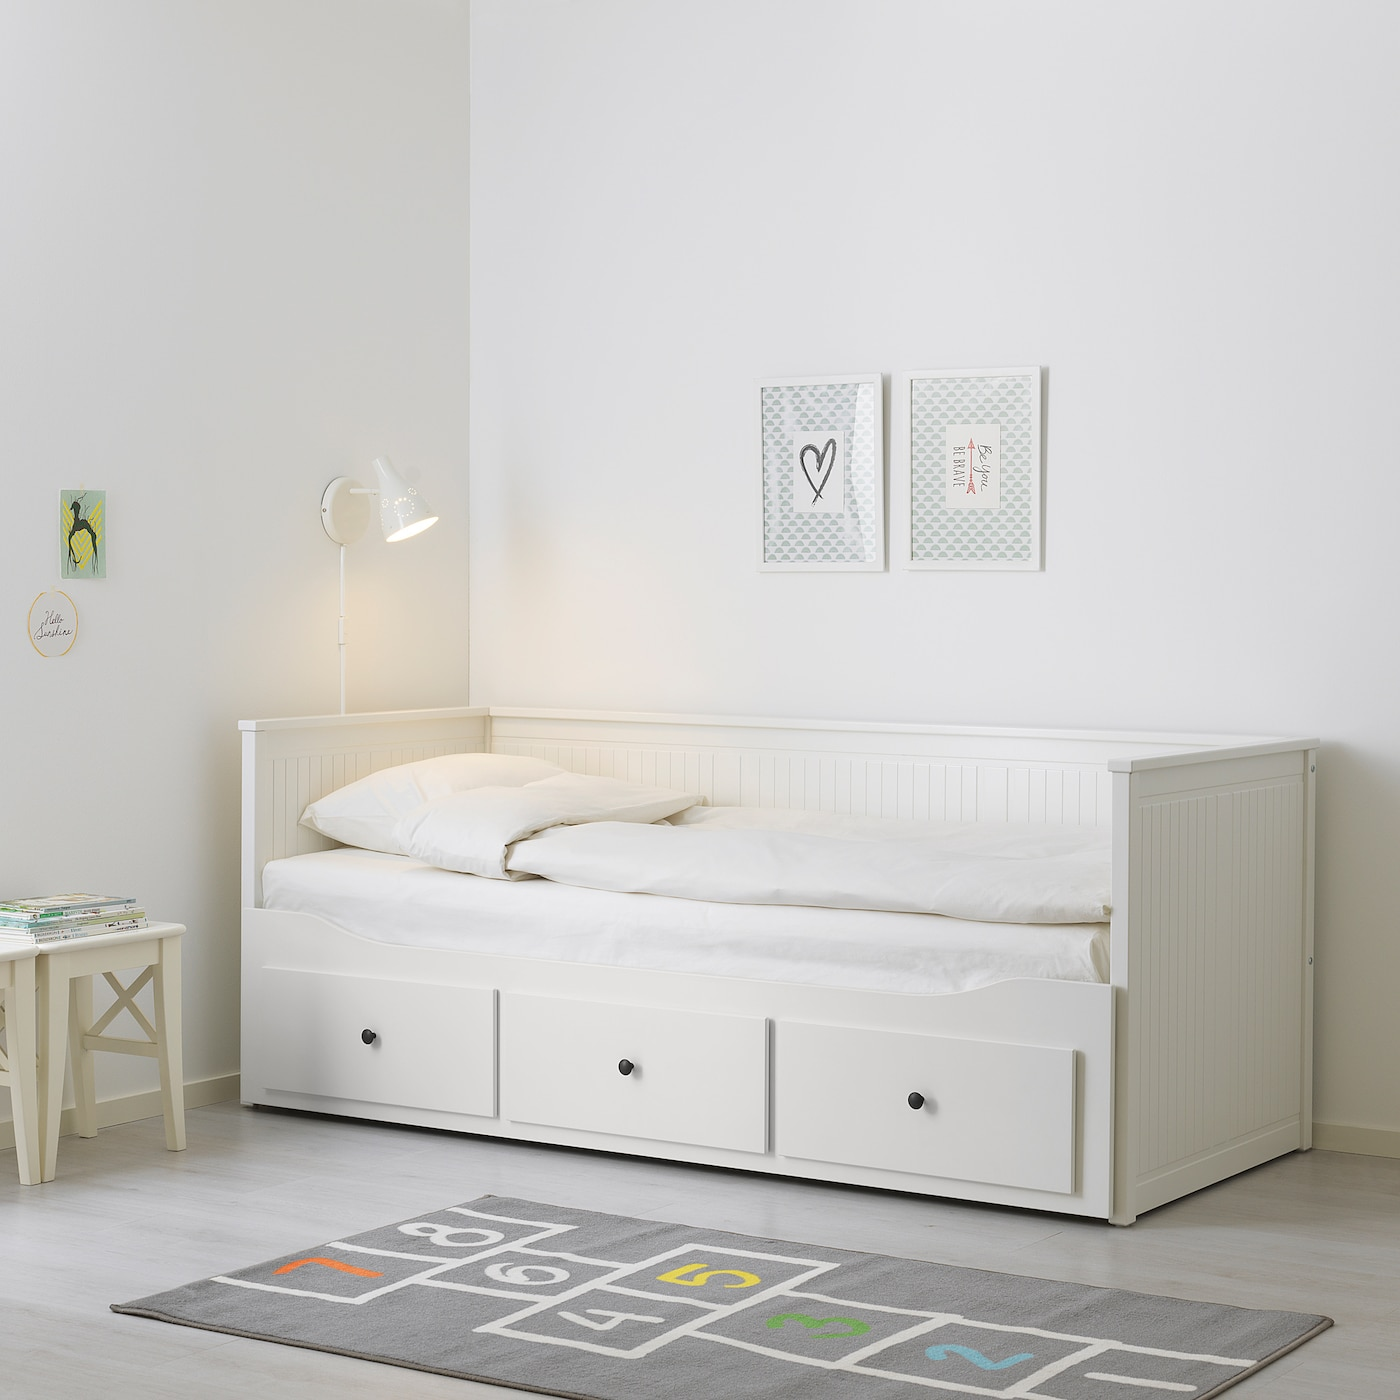 Hemnes White Malfors Firm Day Bed W 3 Drawers 2 Mattresses 80x200 Cm Ikea